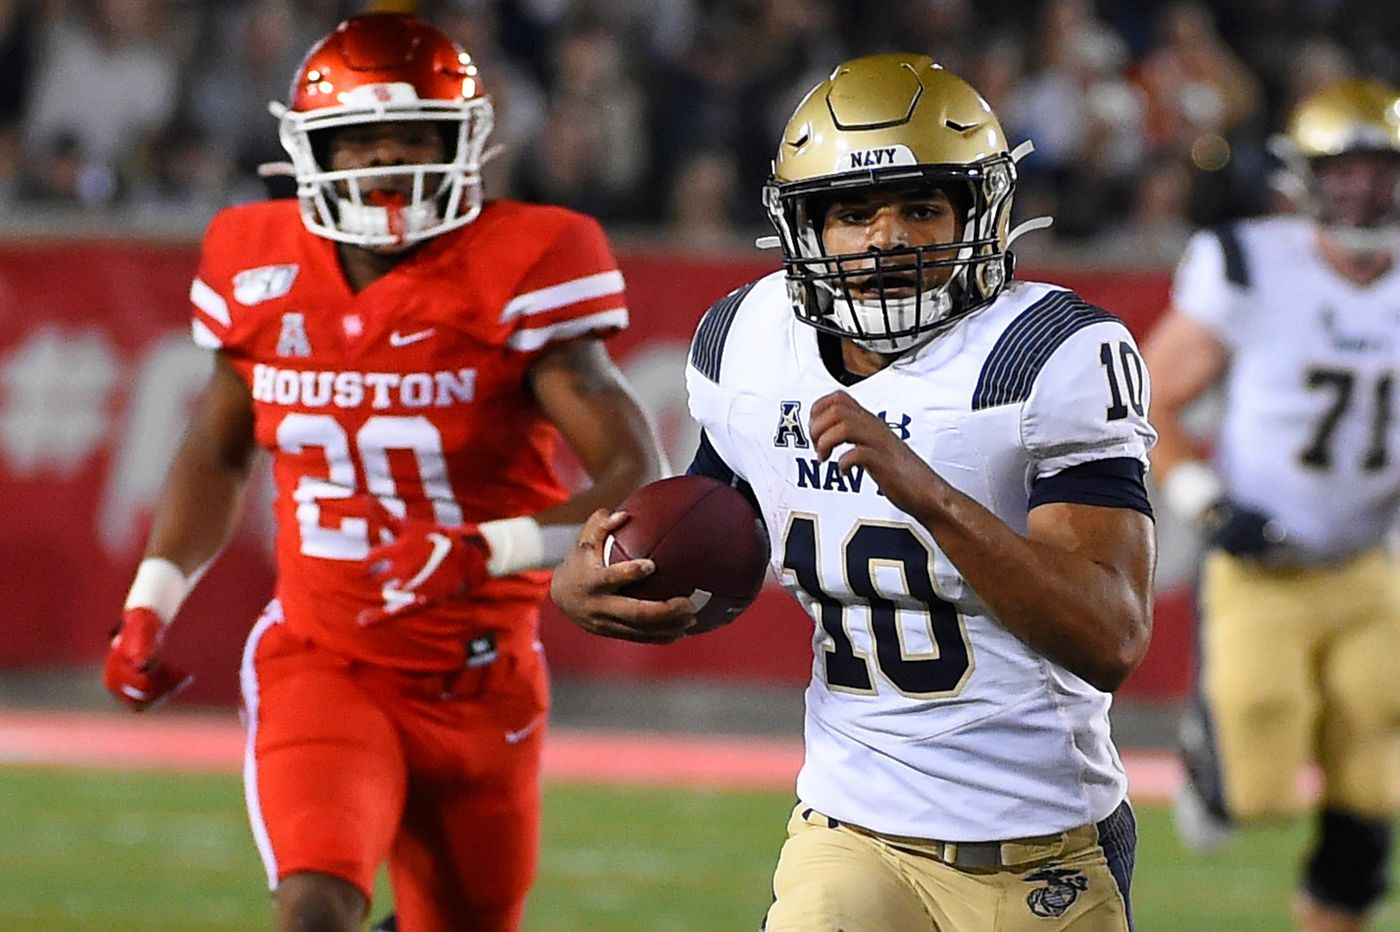 Malcolm Perry has helped lead Navy to success as a full-time quarterback